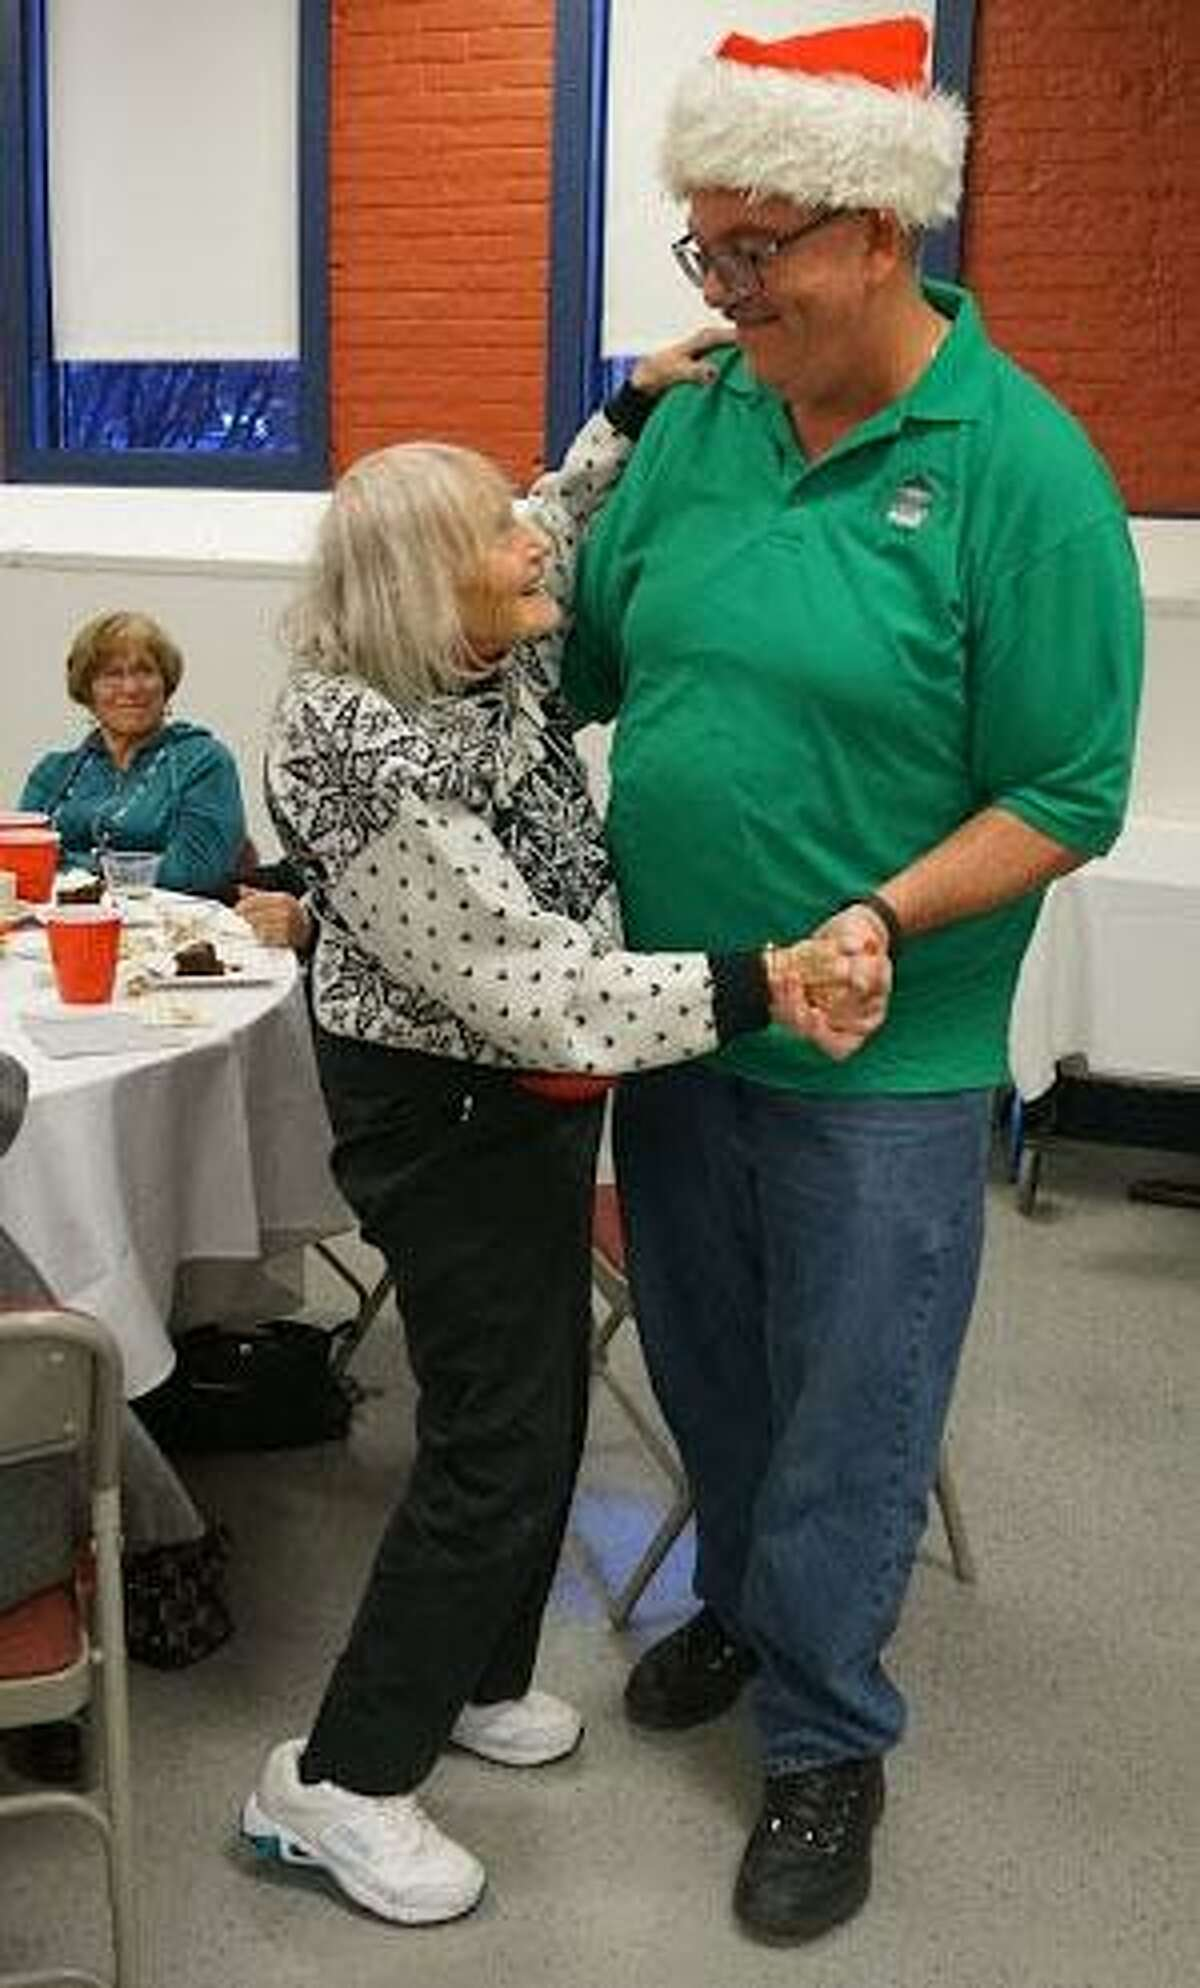 Muriel Gold and Tom Williams, a bus driver at the New Milford Senior Center, show off their dance skills at the center's holiday celebration at The Maxx.